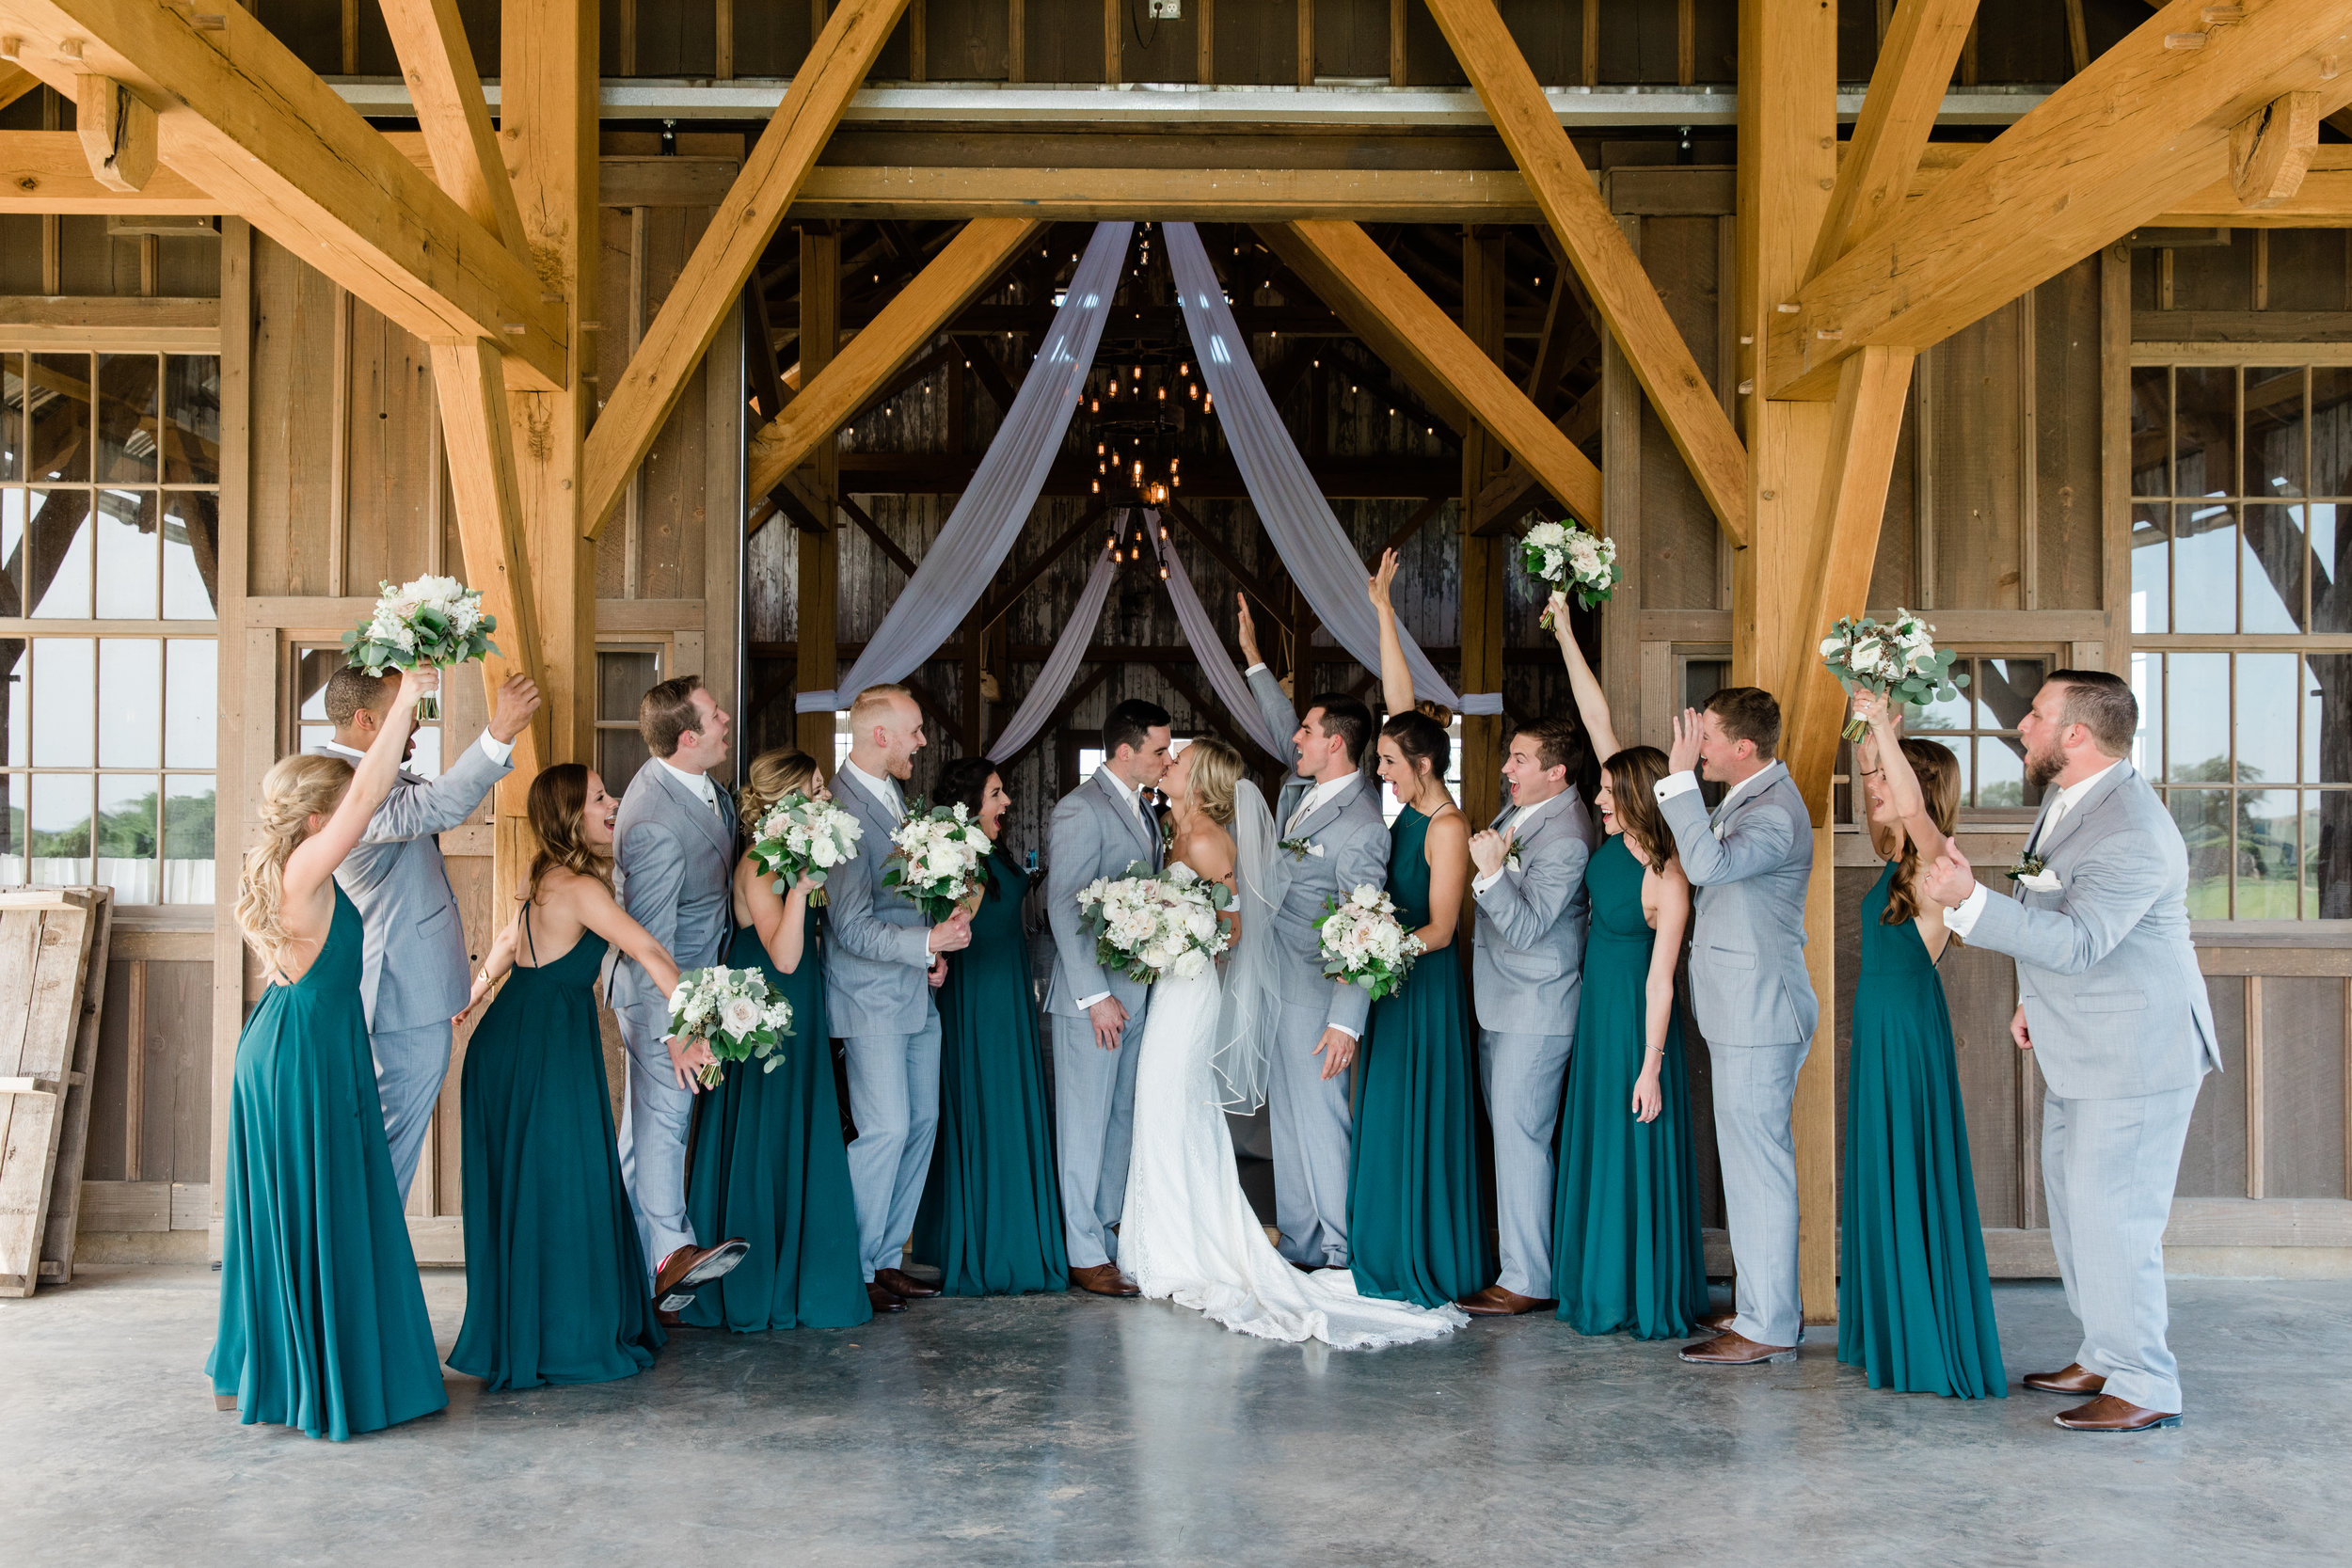 RHODES WEDDING - MARISSA CRIBBS PHOTOGRAPHY-426.jpg